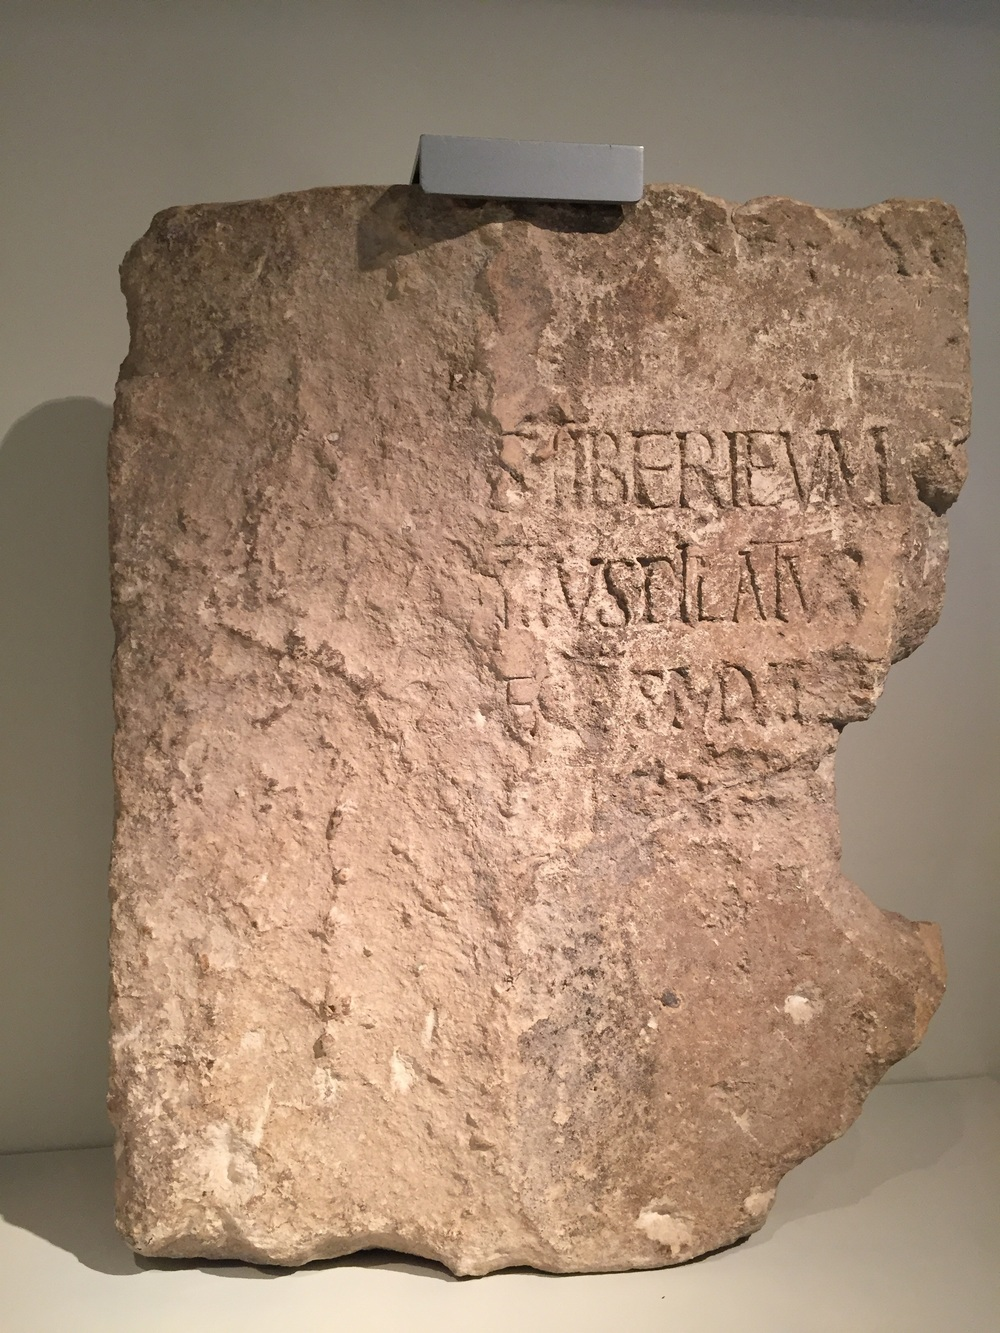 This inscription which bears the name of Pontius Pilate, was discovered at Caesarea Maritima, which we visited on  Oct. 14th .